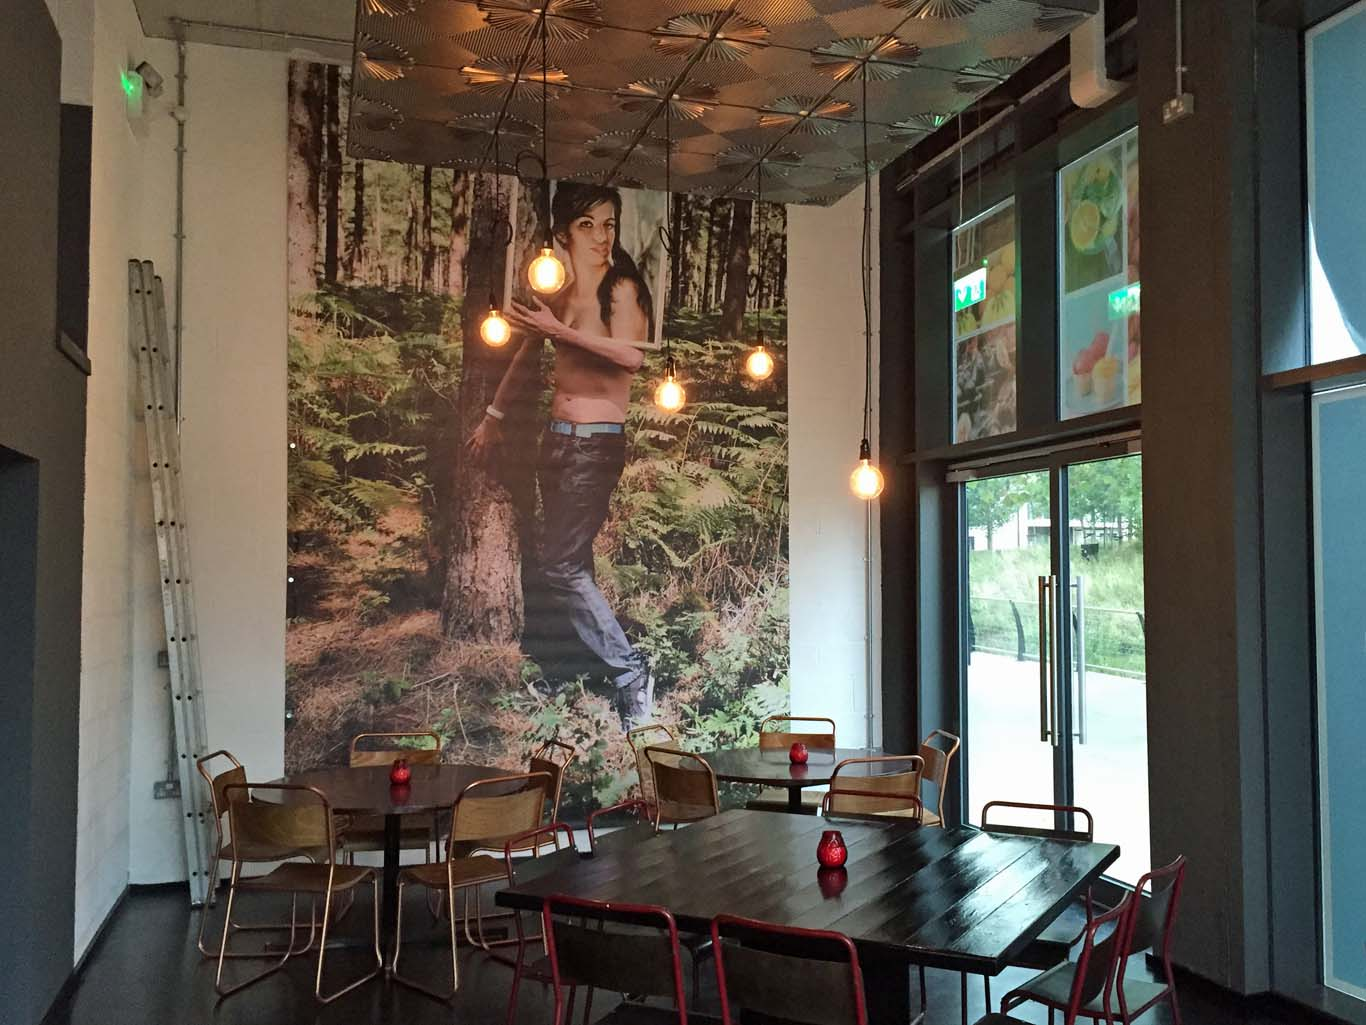 Tina features in the 1960s painting by J. H. Lynch, floor to ceiling at the new cafe